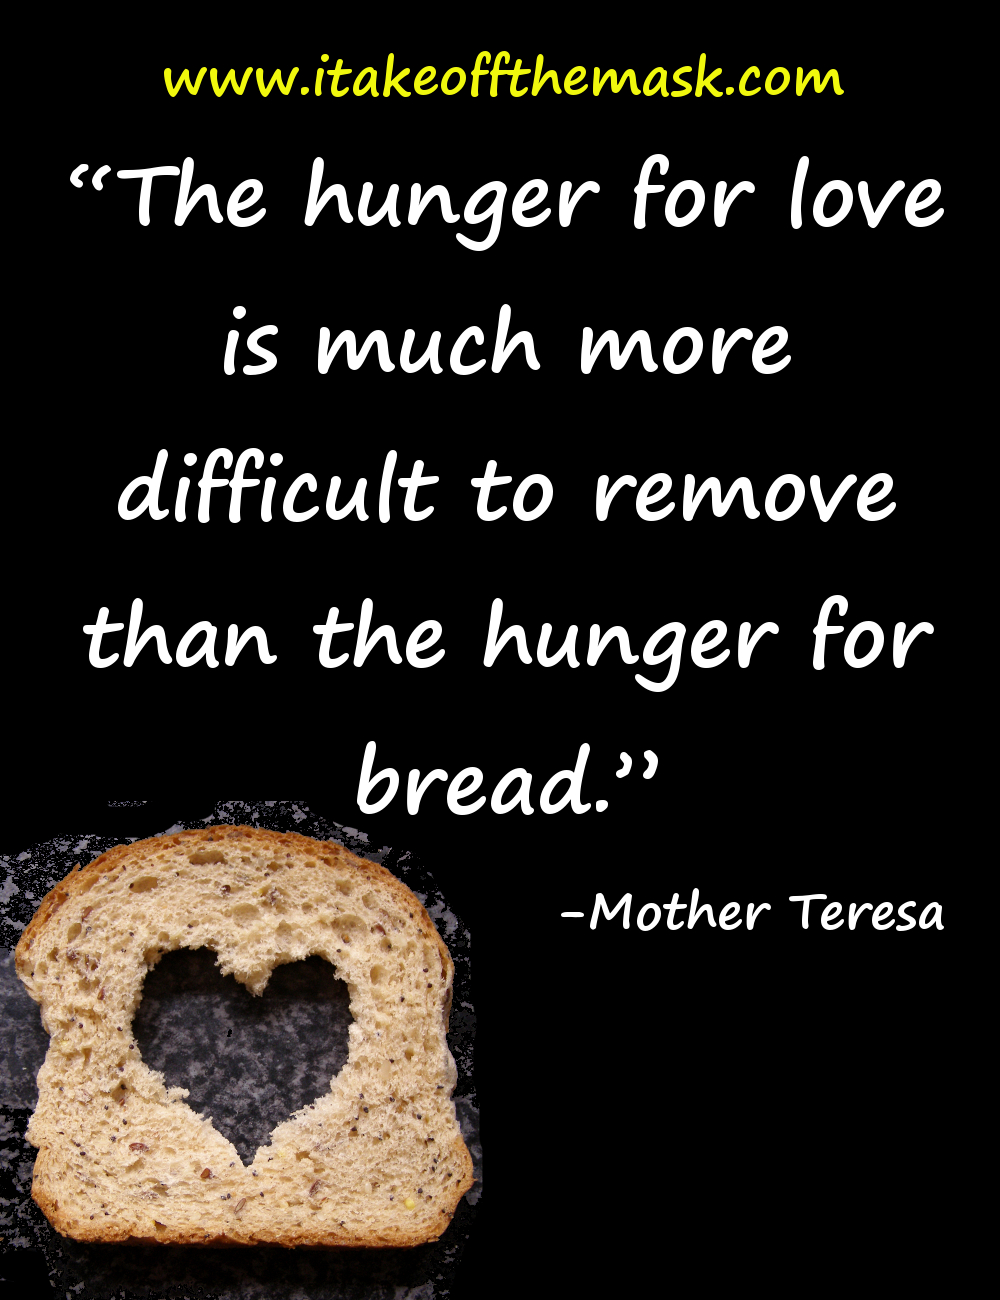 Life Quotes Mother Teresa Awesome Inspirational Quotes From Mother Teresa  Best Life Quotes Poems